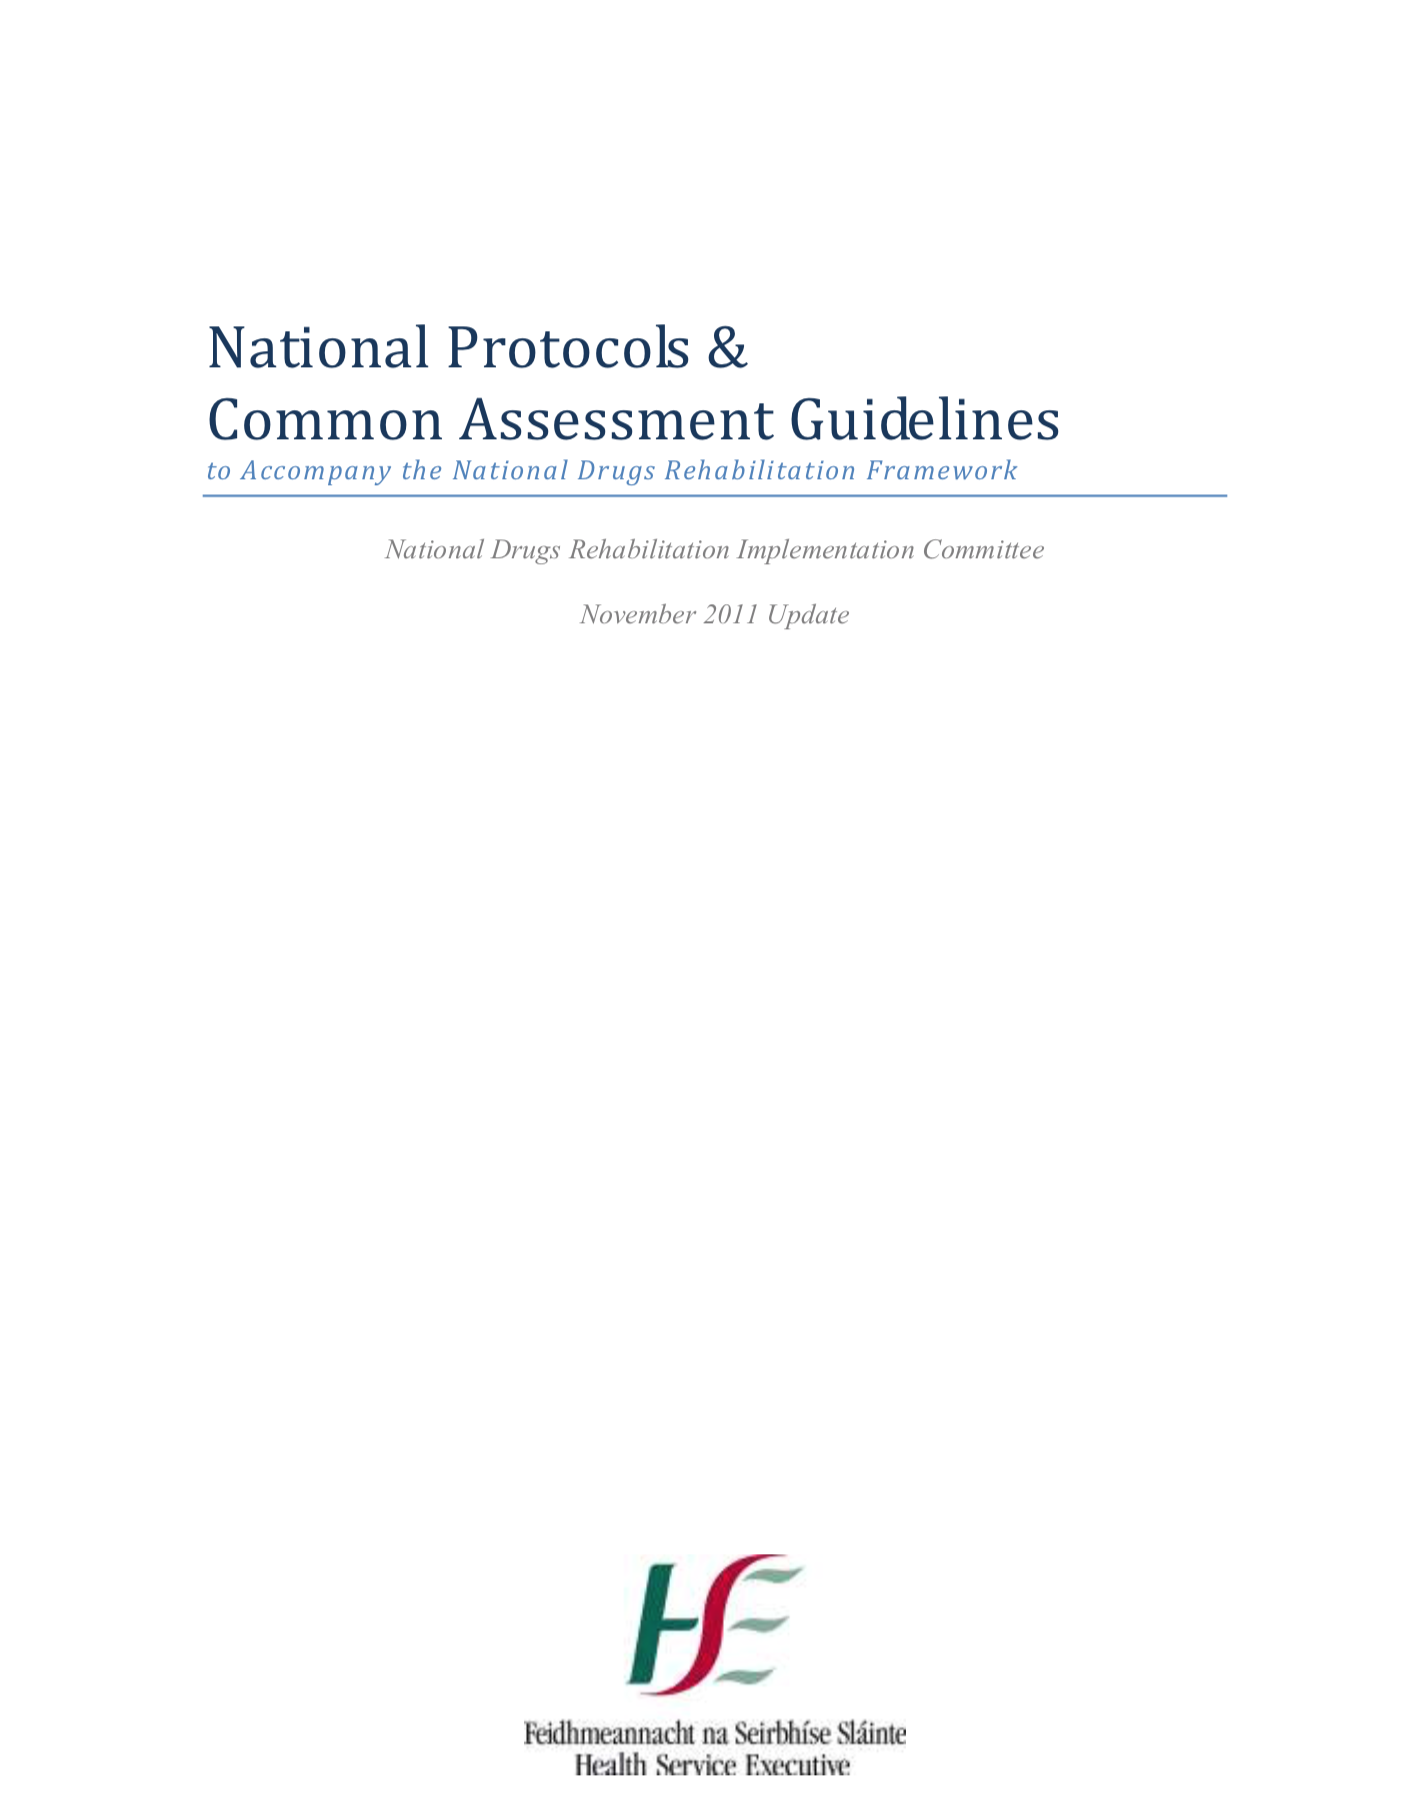 National-Protocols-Assessment-Guidelines-November-2011